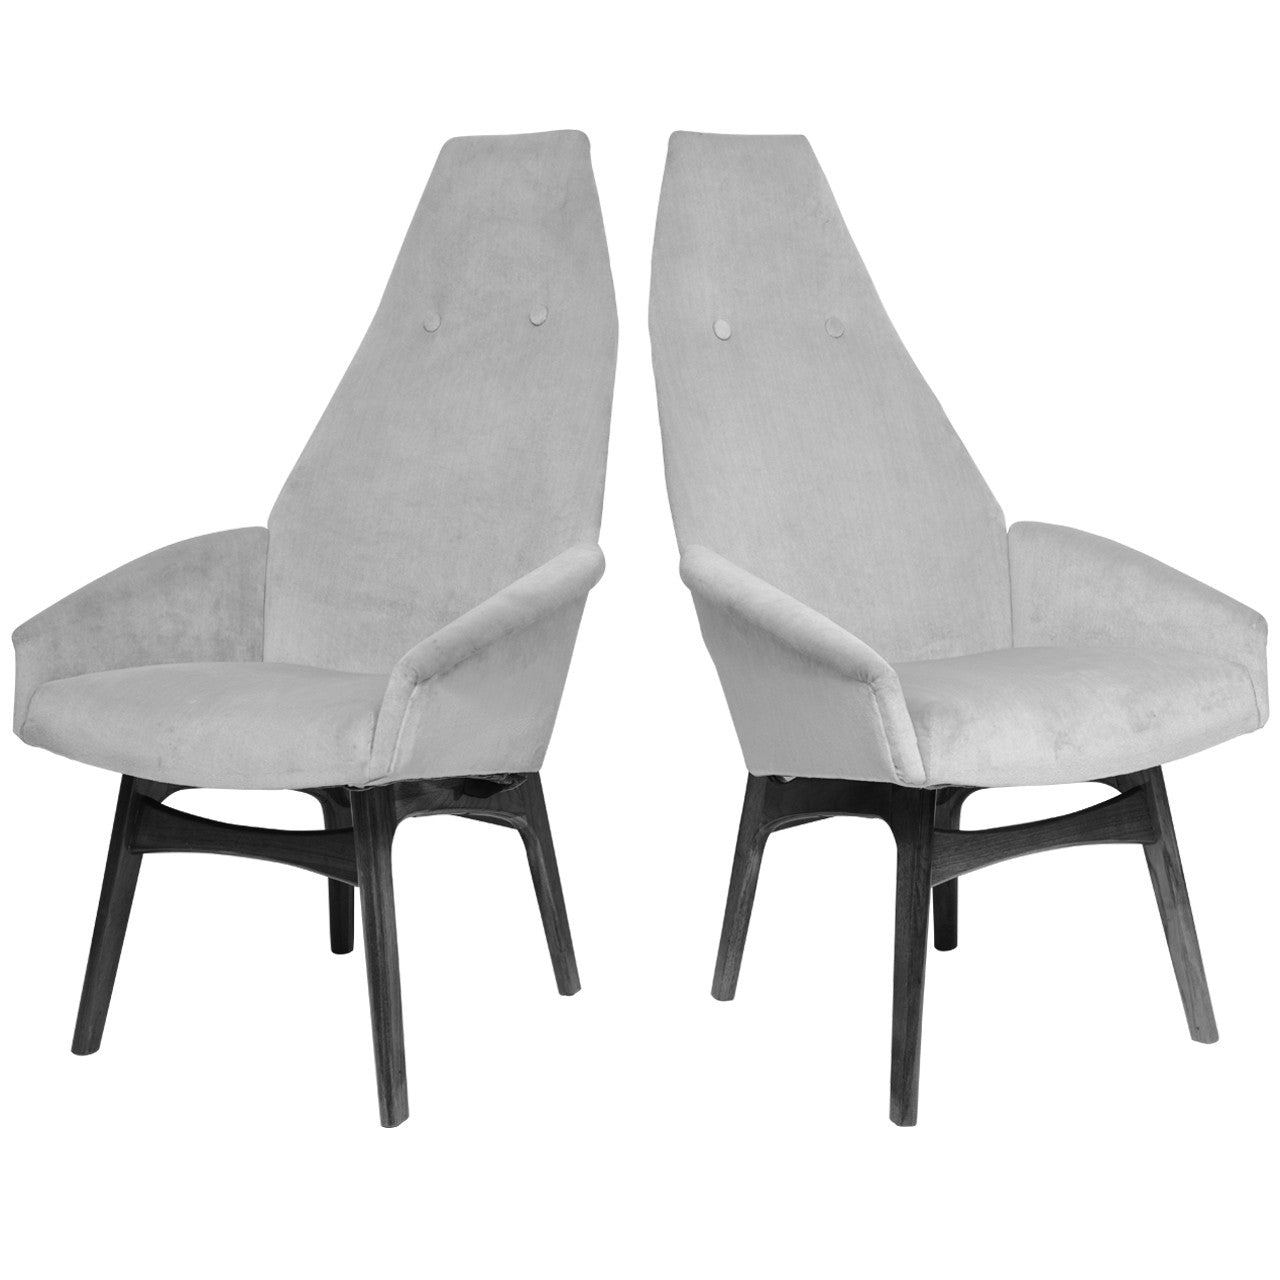 modern-adrian-pearsall-arm-chairs-2051-c-craft-associates-inc-01